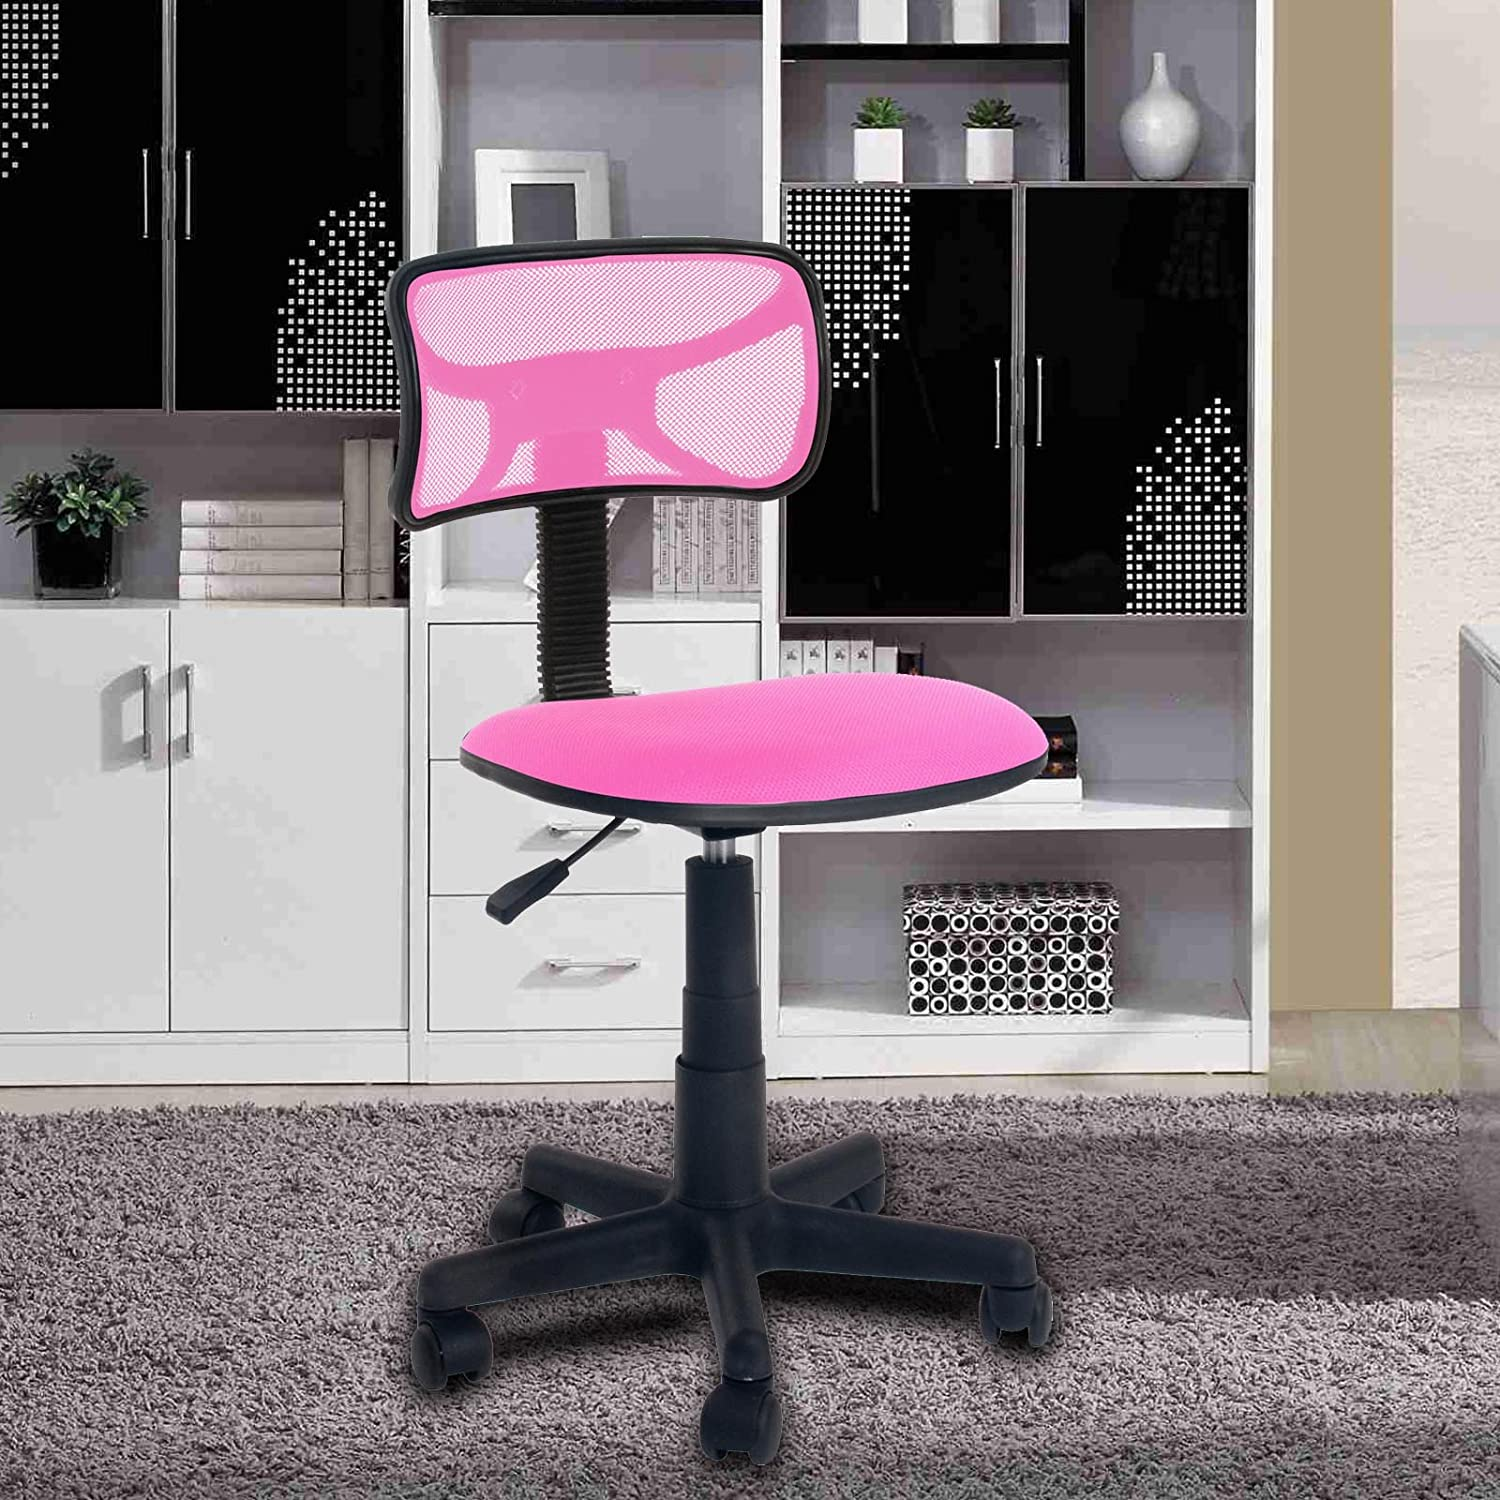 Amazon.com : Office Chair FurnitureR Kids Chair Modern Ergonomic Low Back  Computer Chair Office Desk Chair Without Arms With Fabric Pads Pink : Office  ...